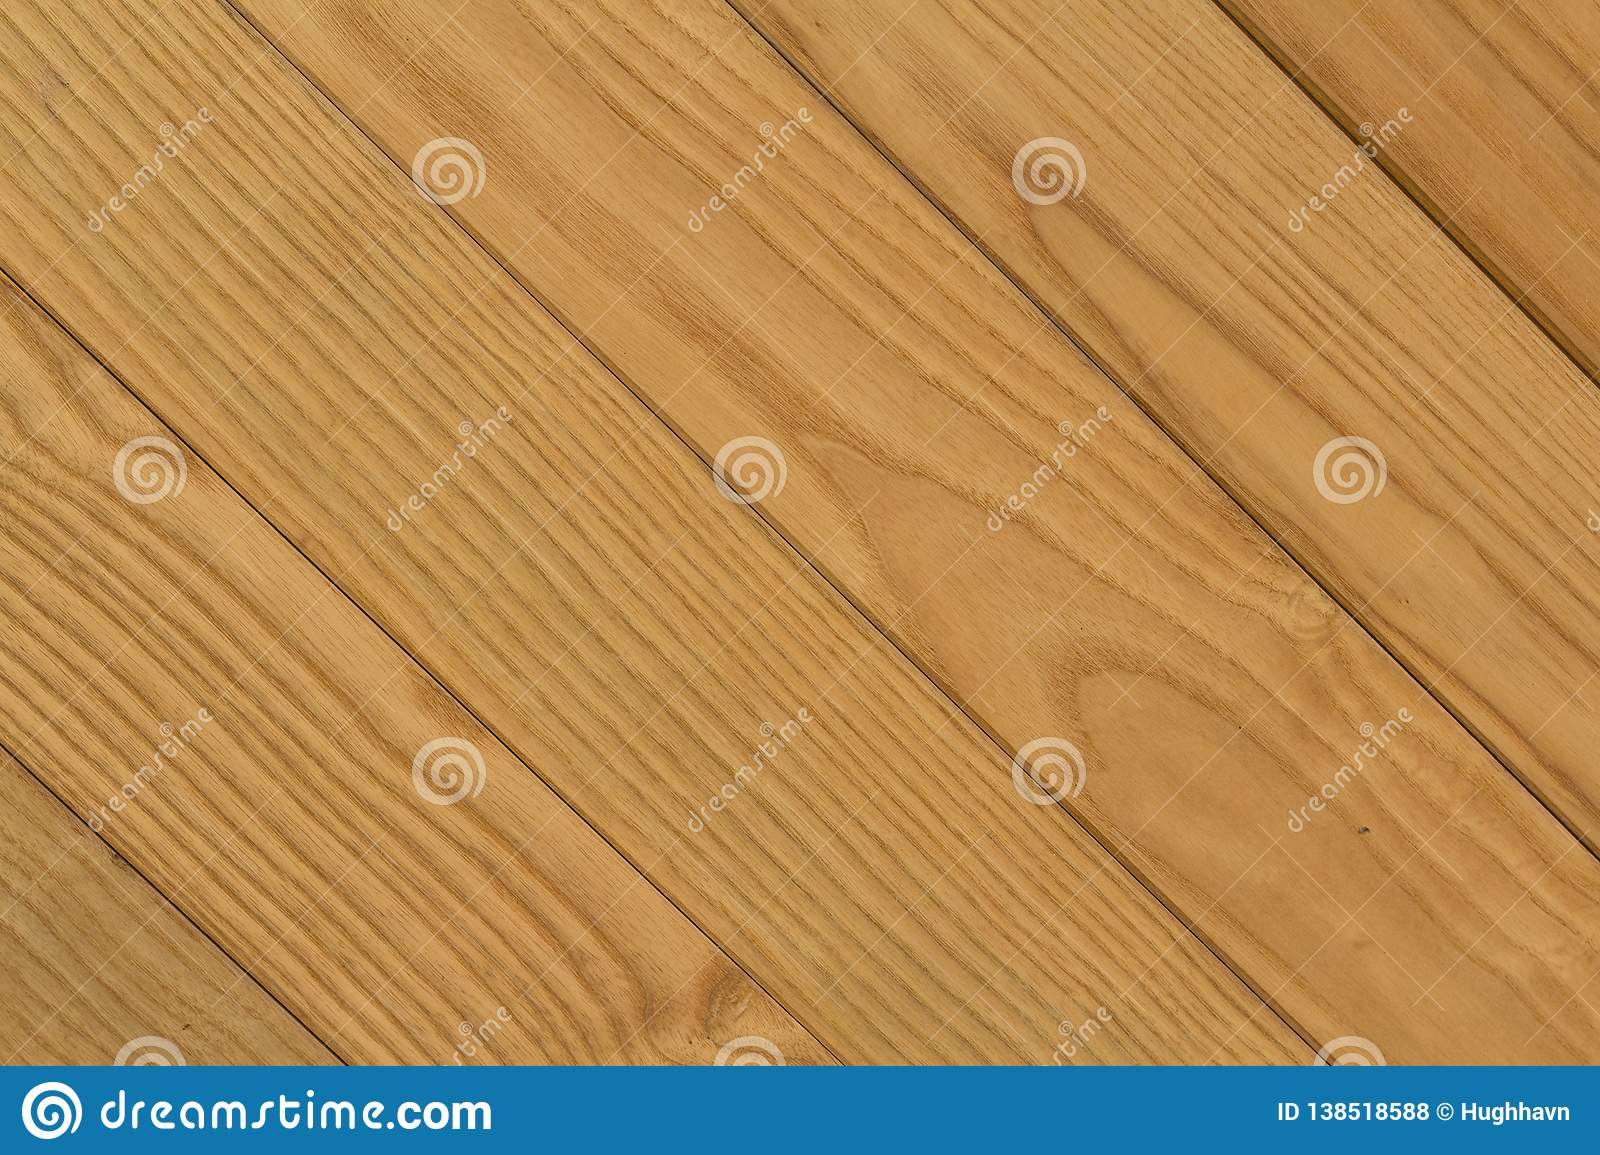 Texture of Diagonal Brown Wooden Bars for Background